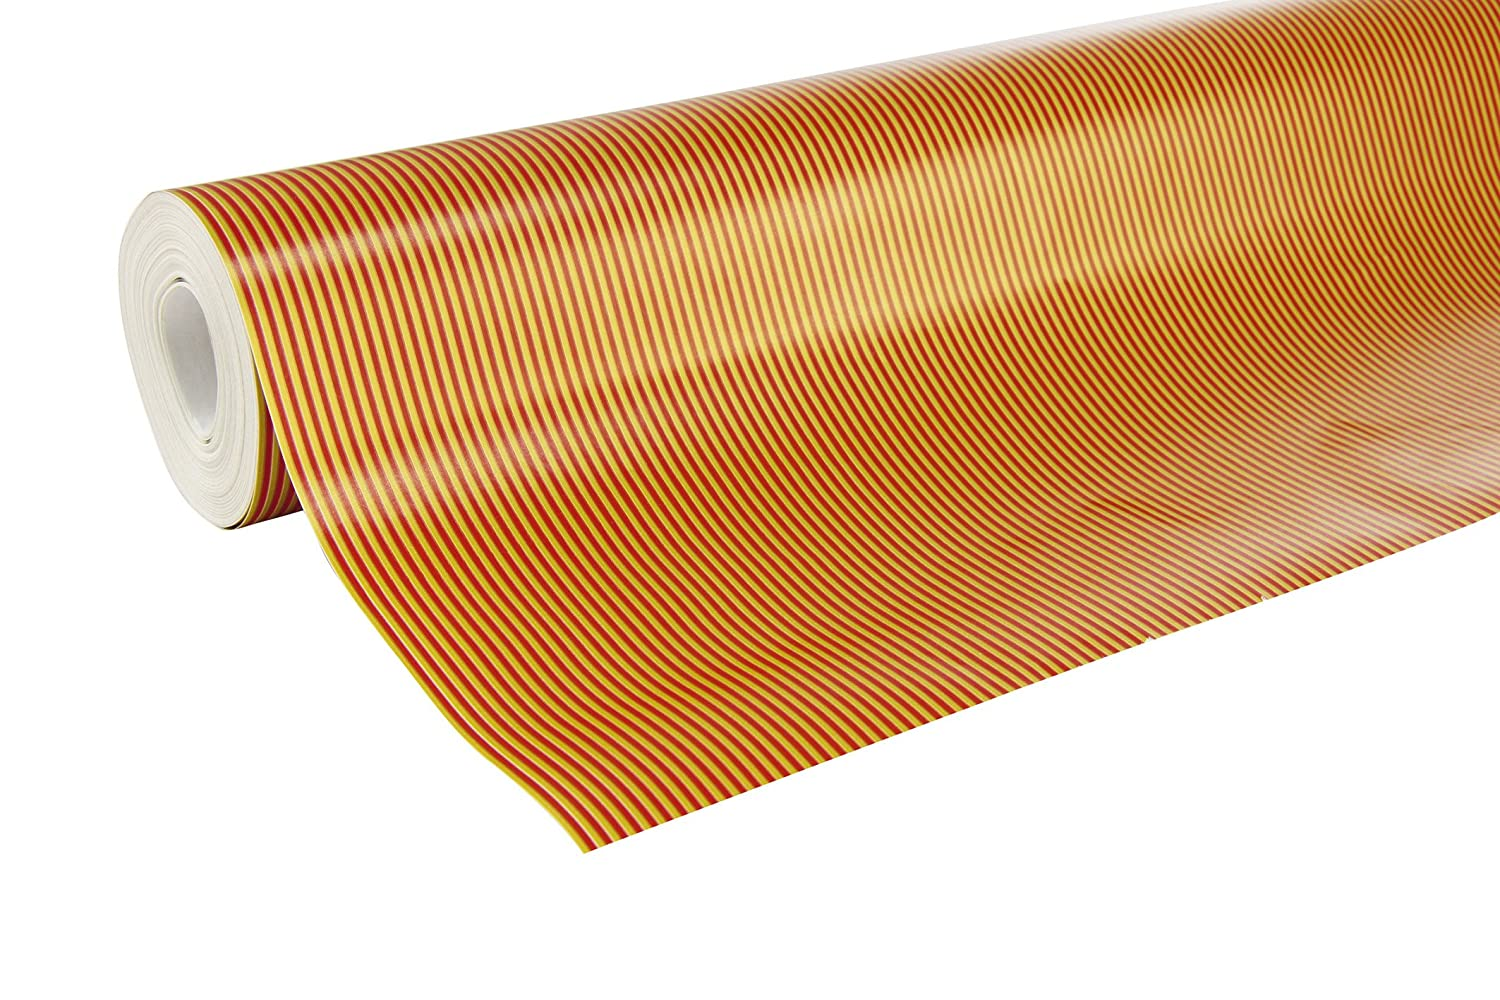 Clairefontaine 50 x 0.7 m Alliance Striped Paper Roll - Gold/Red ExaClair 211313C